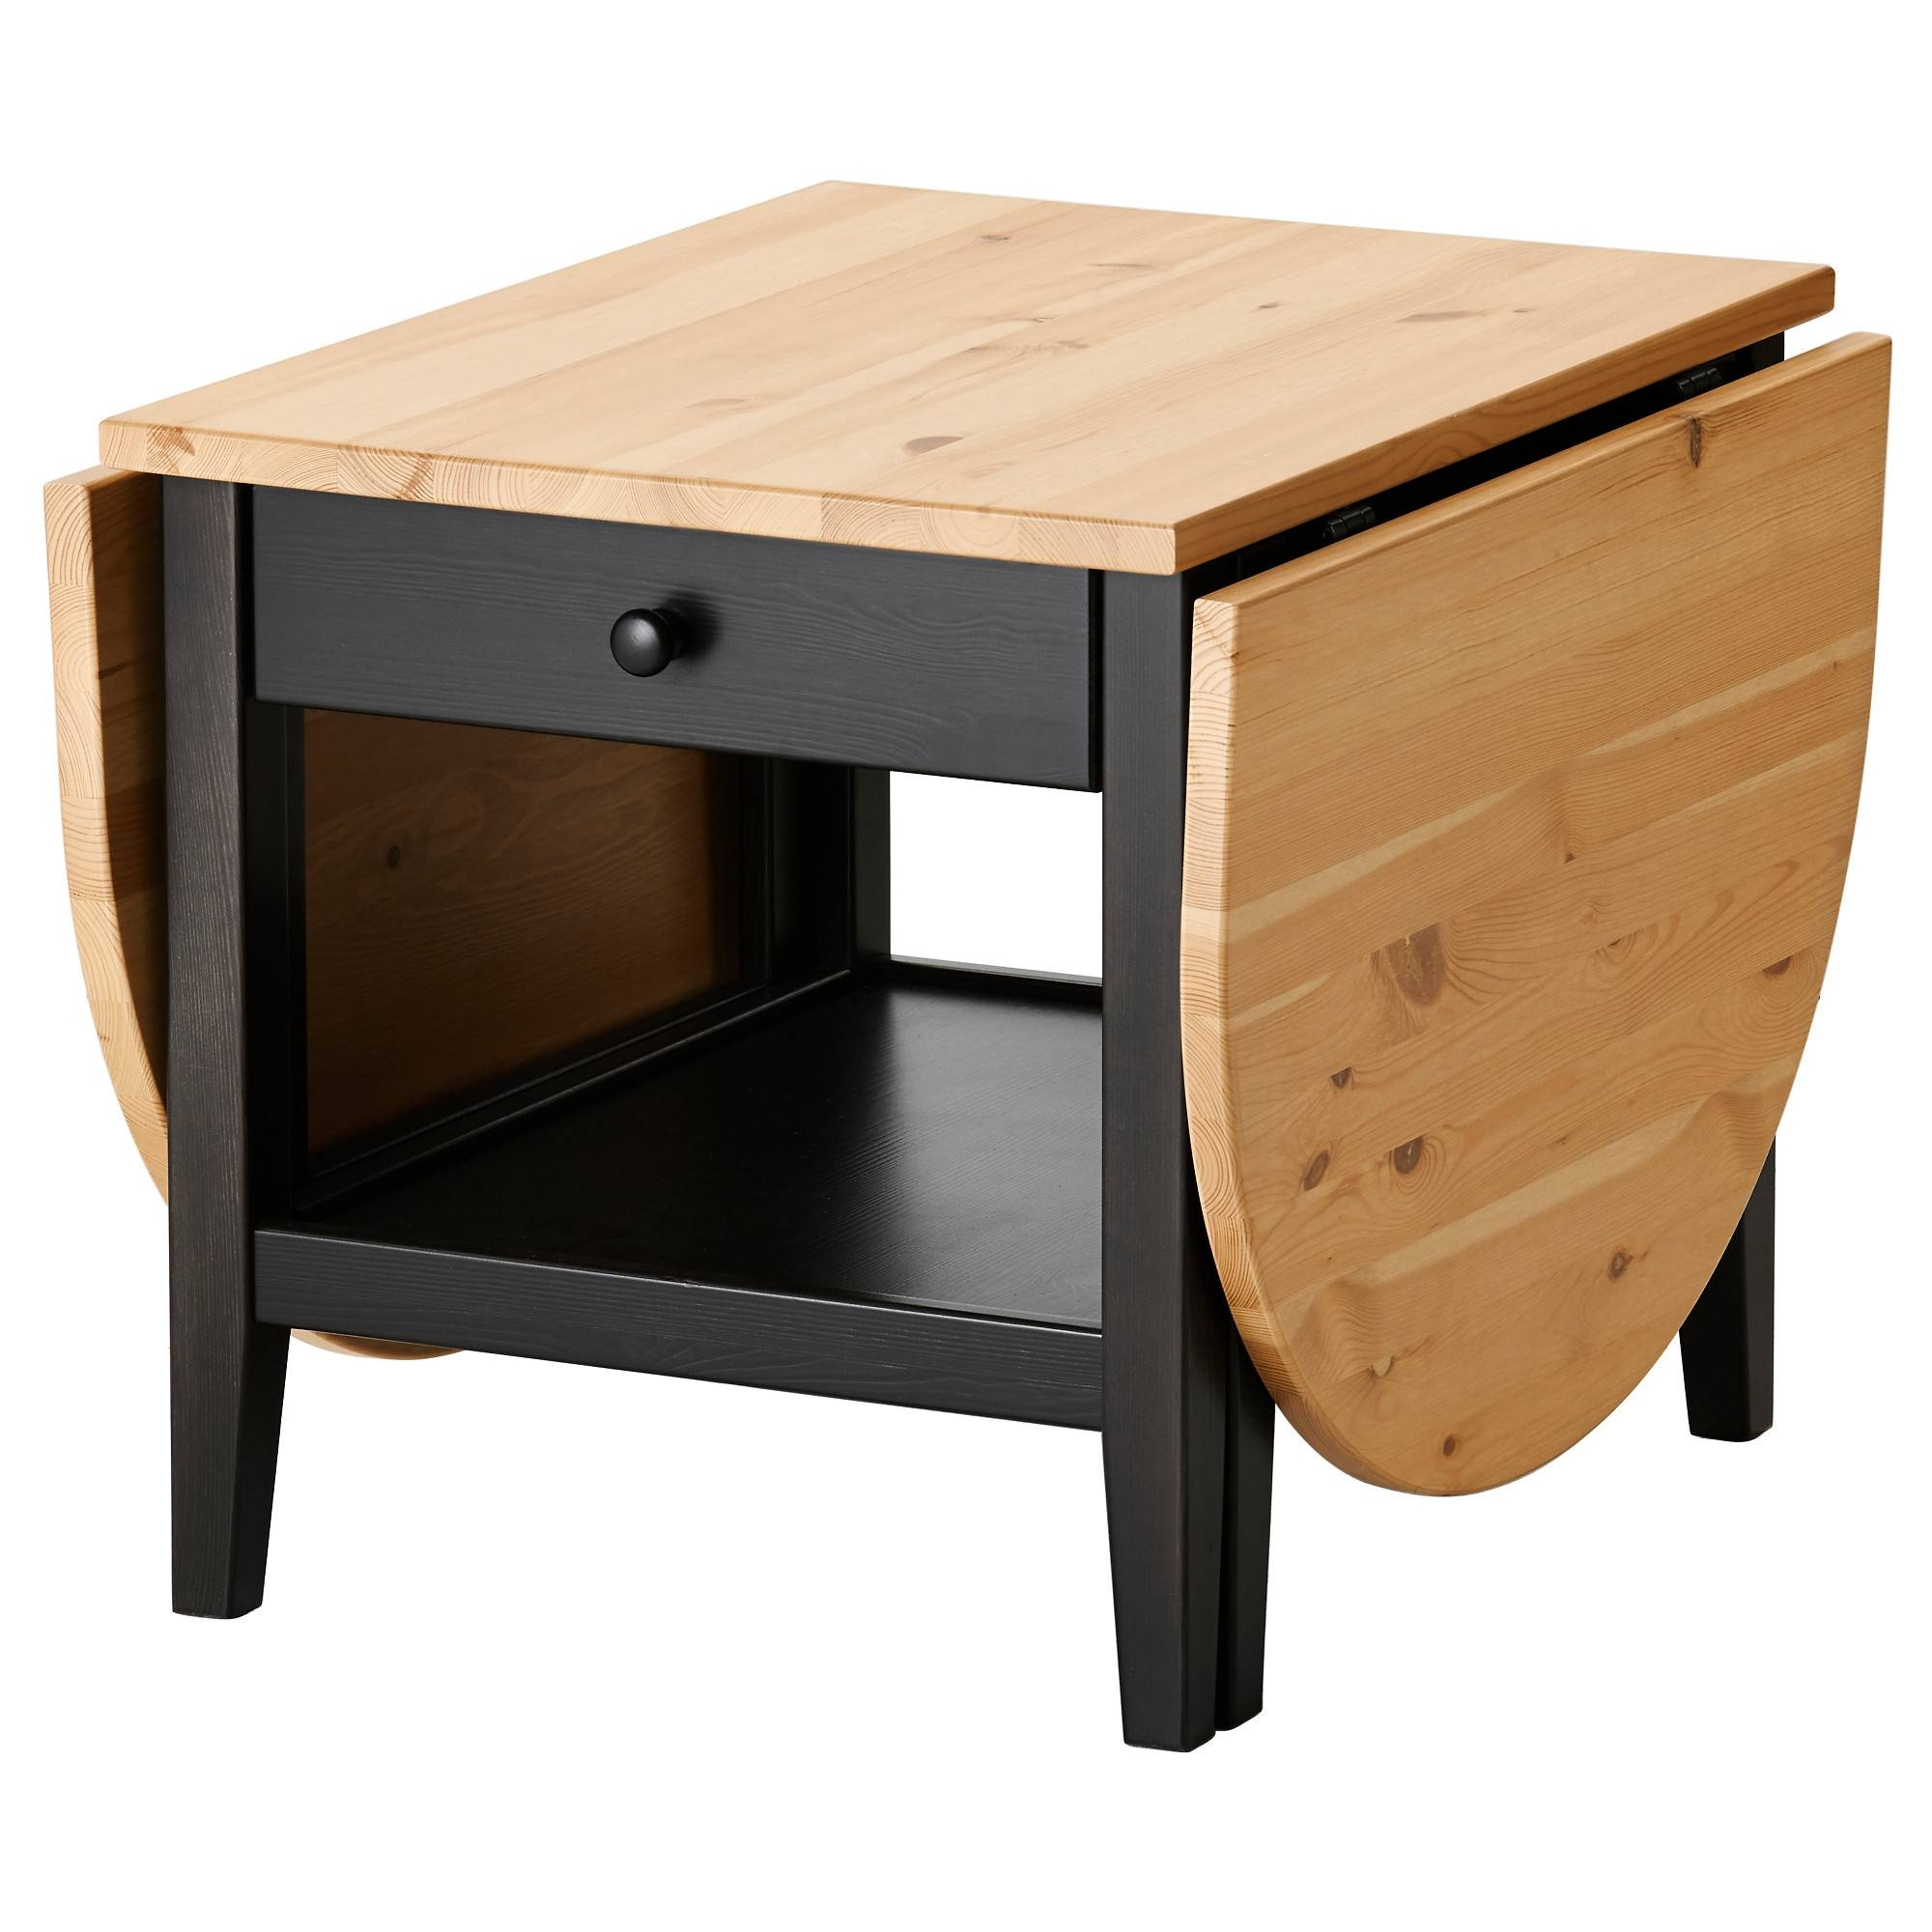 Favorites Small Coffee Table Ideas – White Small Coffee Table Inside Small Wood Coffee Tables (View 17 of 30)